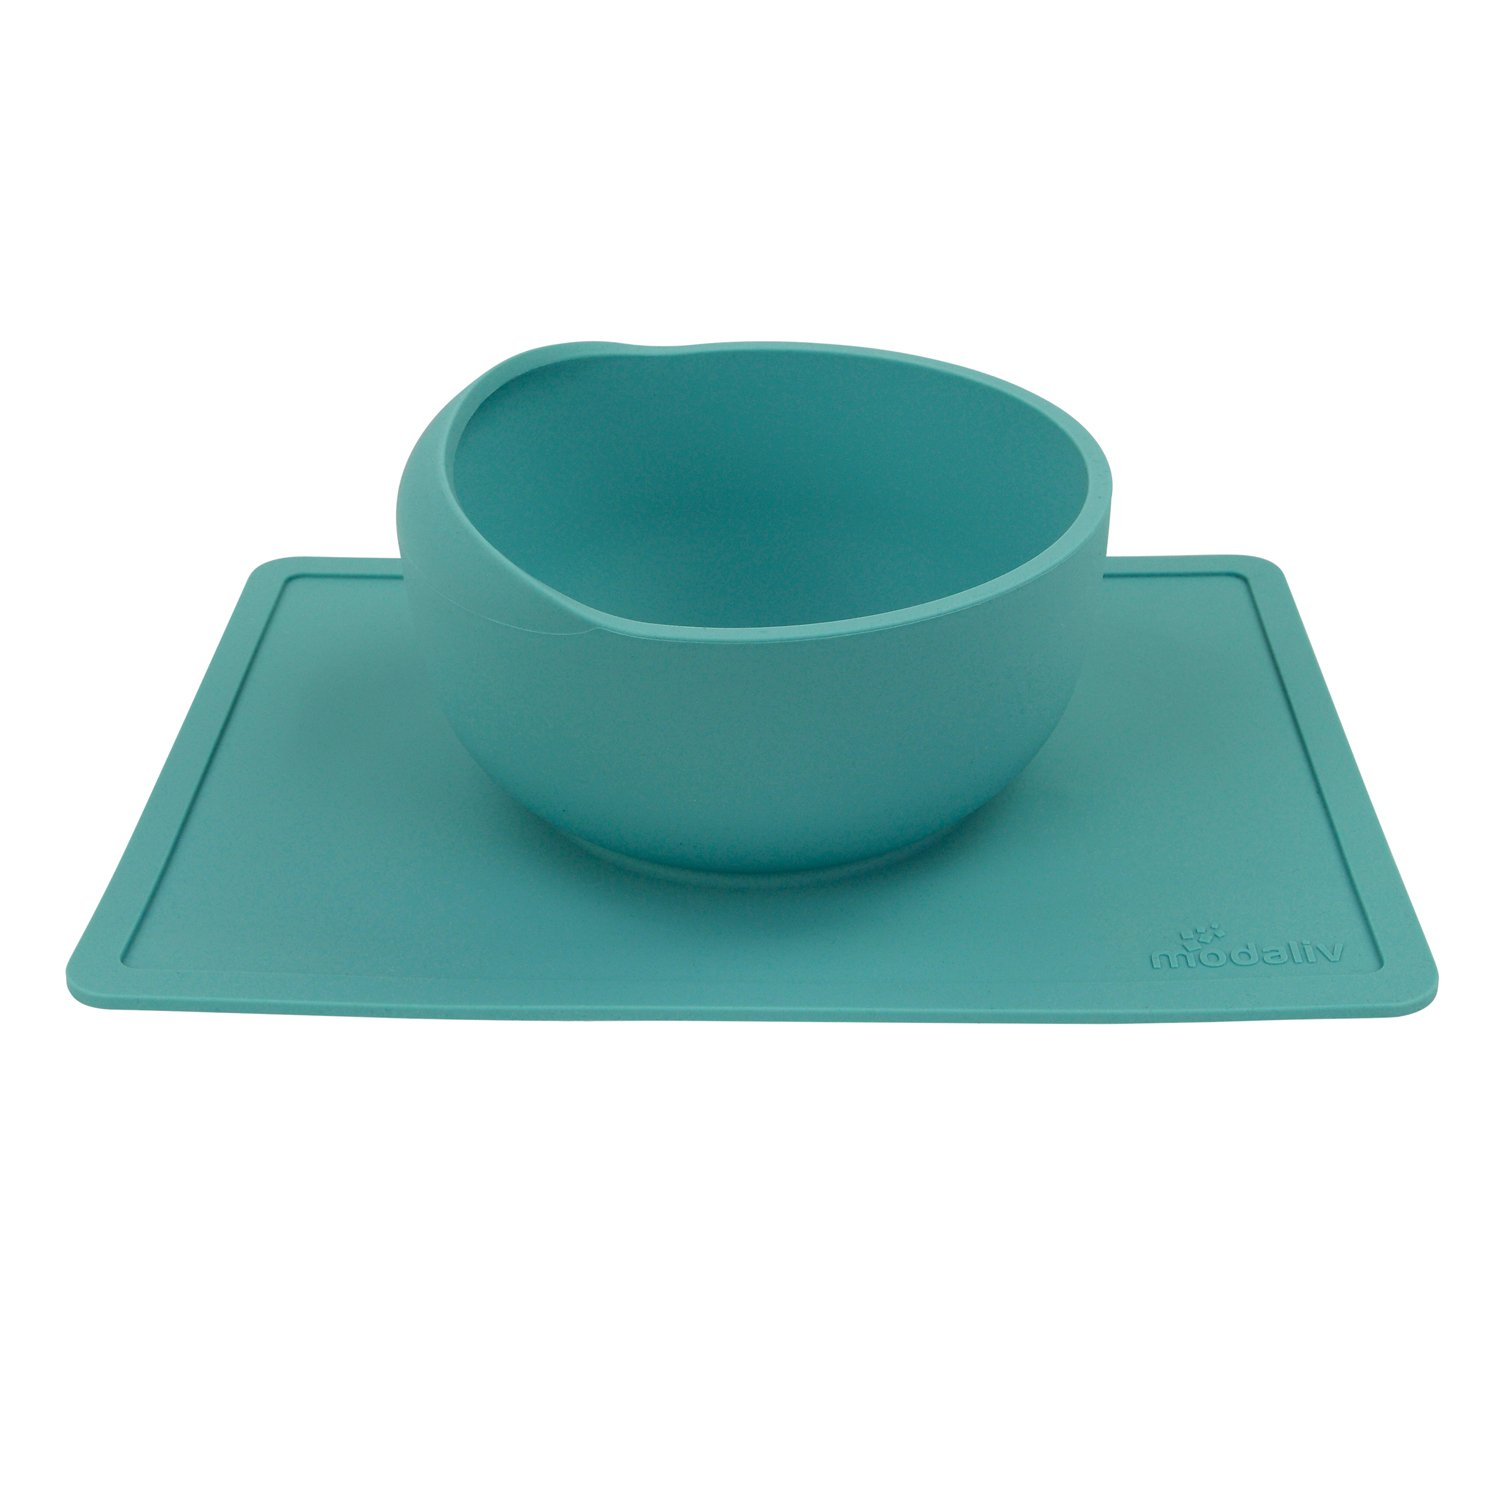 Scooper Bowl with Silicone Placemat Suction Base - Non-Skid - No Spill - Food Grade Silicone - Dishwasher and Microwave Safe - 33.8oz Large-Capacity Bowl by Modaliv